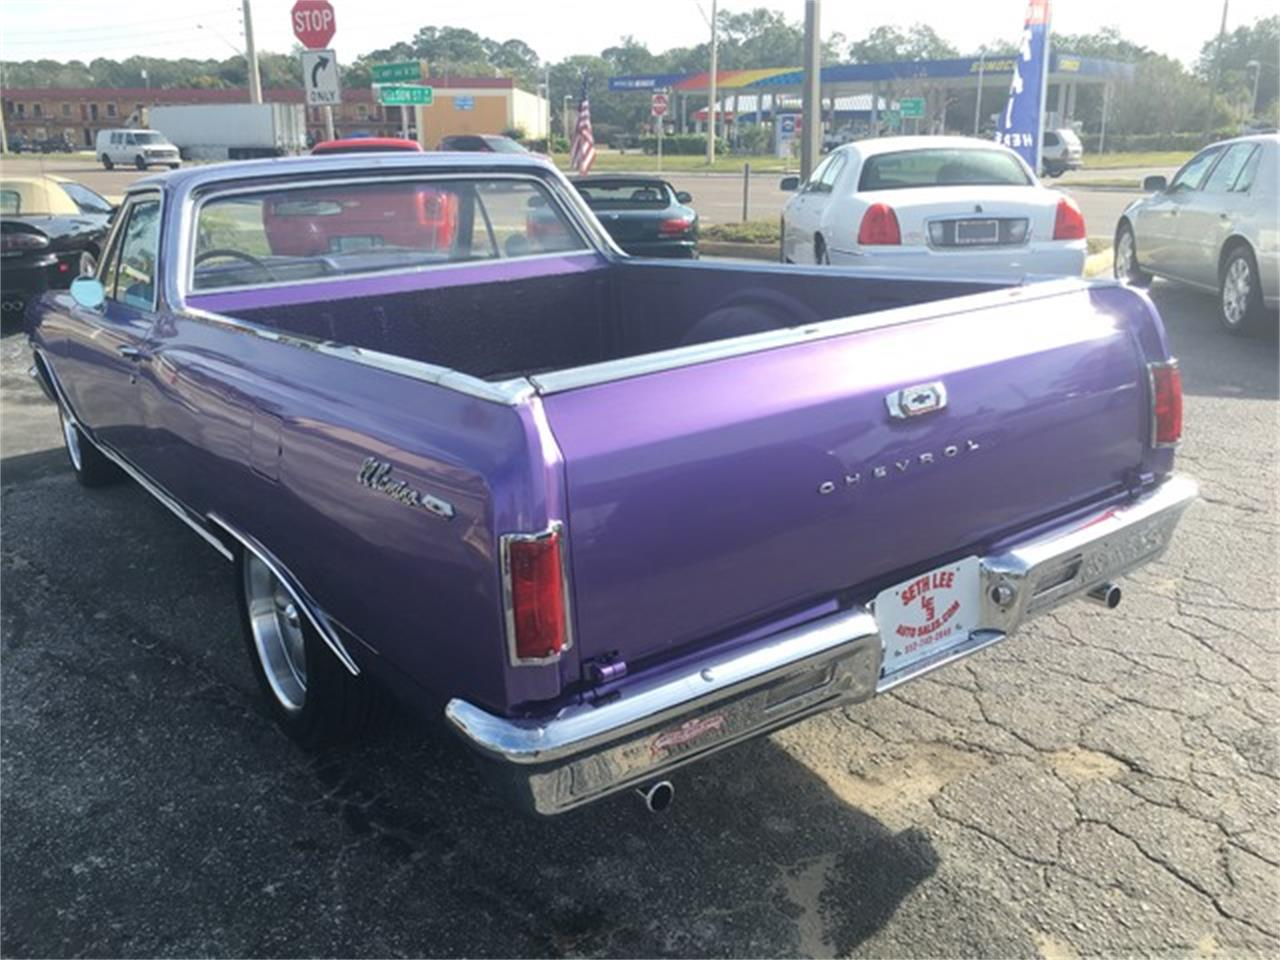 Large Picture of '65 Chevrolet El Camino located in Tavares Florida Auction Vehicle Offered by Seth Lee Auto Sales - KA12